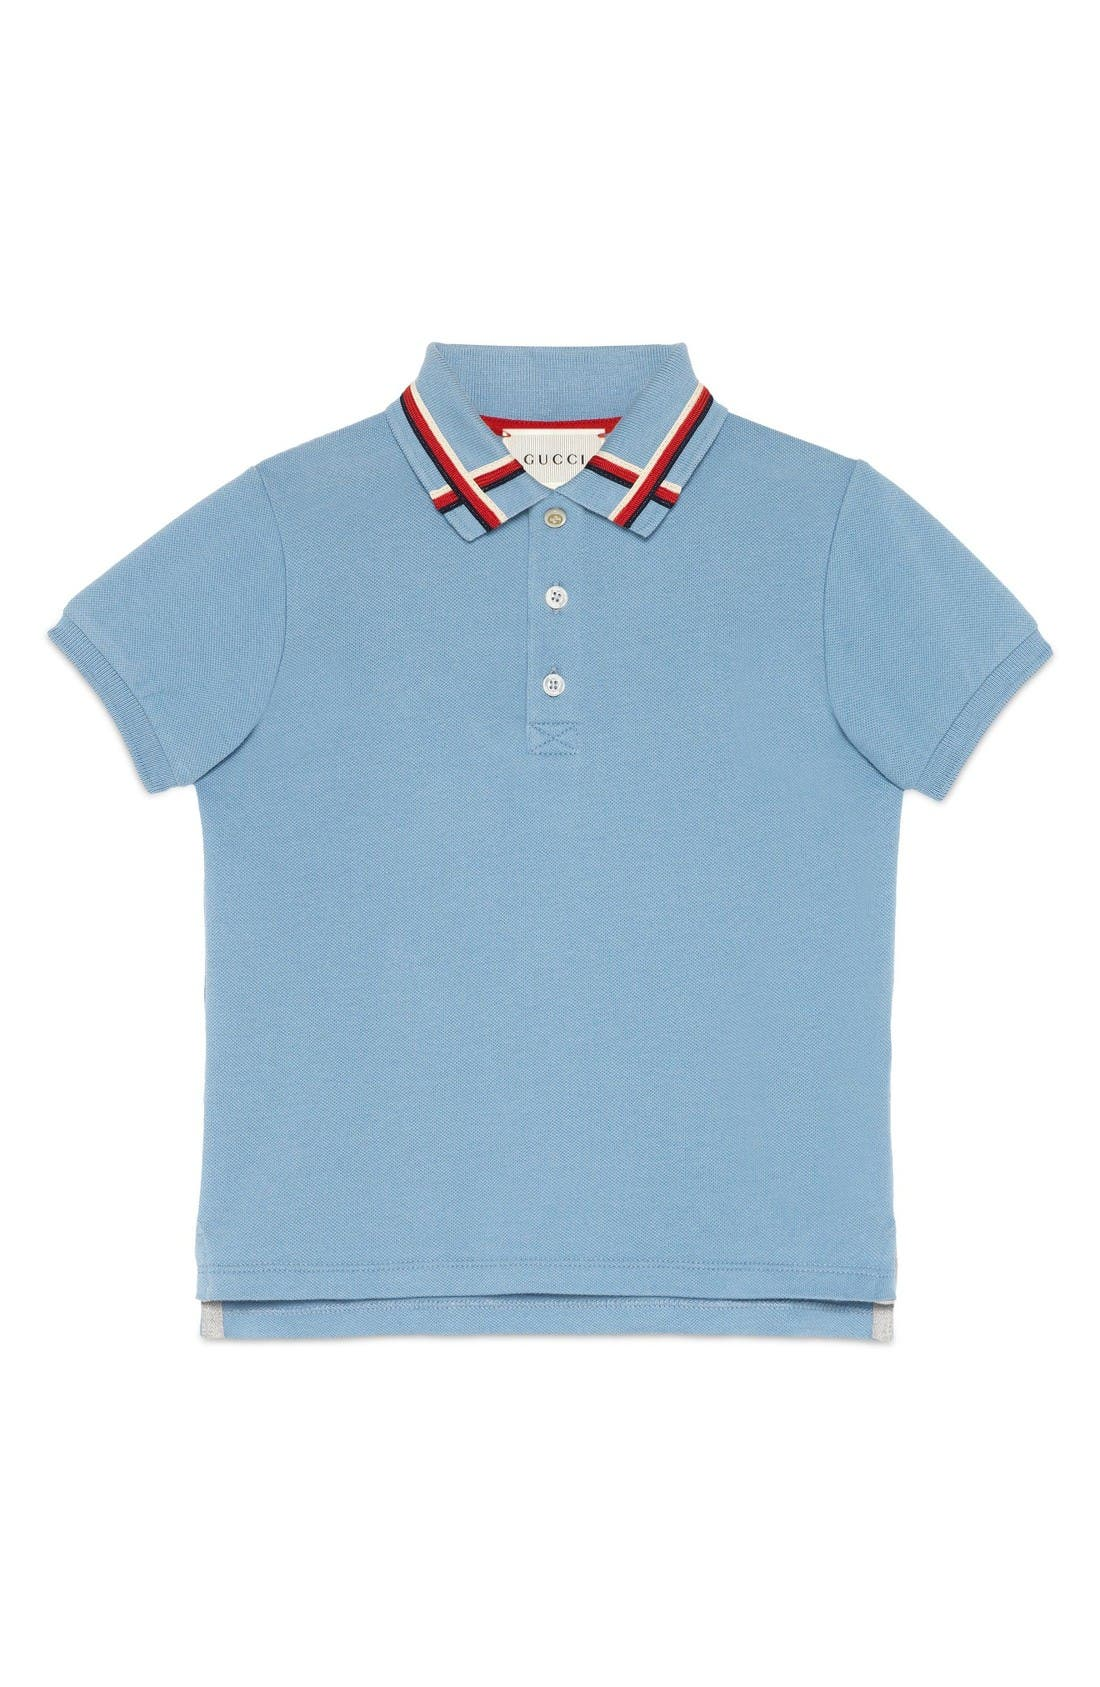 Gucci Ribbon Polo (Little Boys & Big Boys)